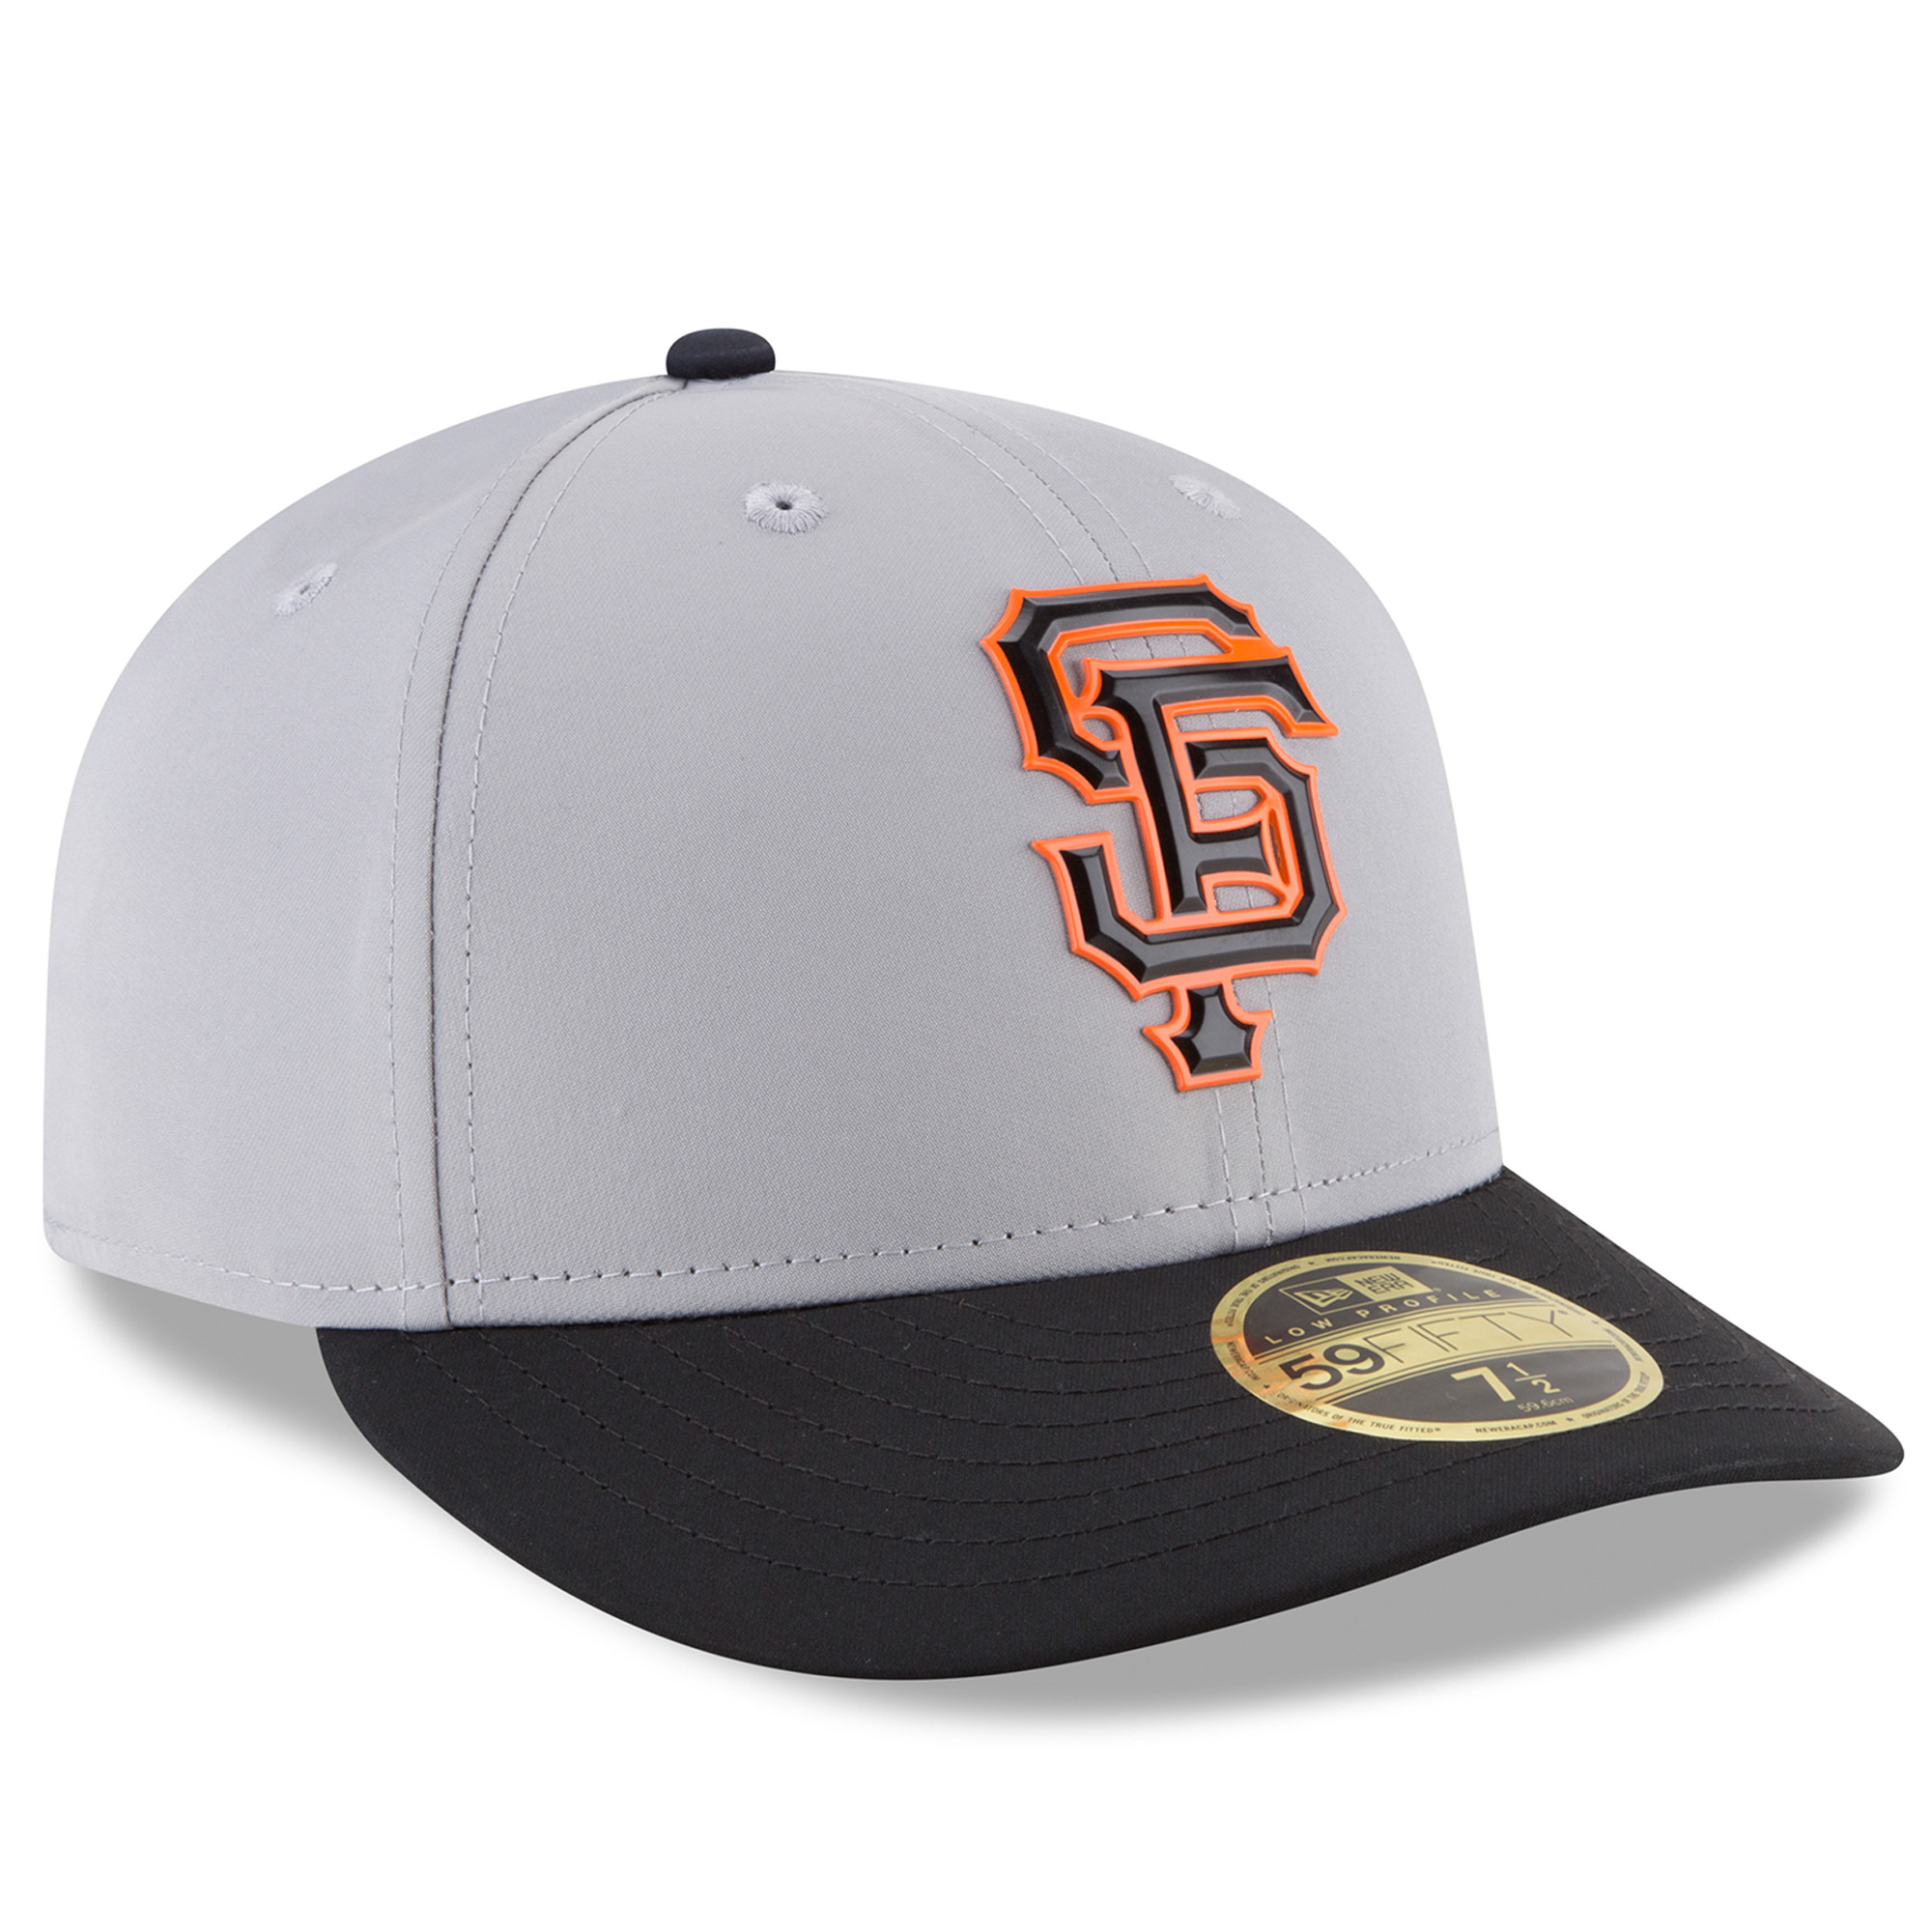 newest collection 90e68 d2c03 San Francisco Giants New Era On-field Prolight Batting Practice Low Profile  59FIFTY Fitted Hat - Gray - Walmart.com